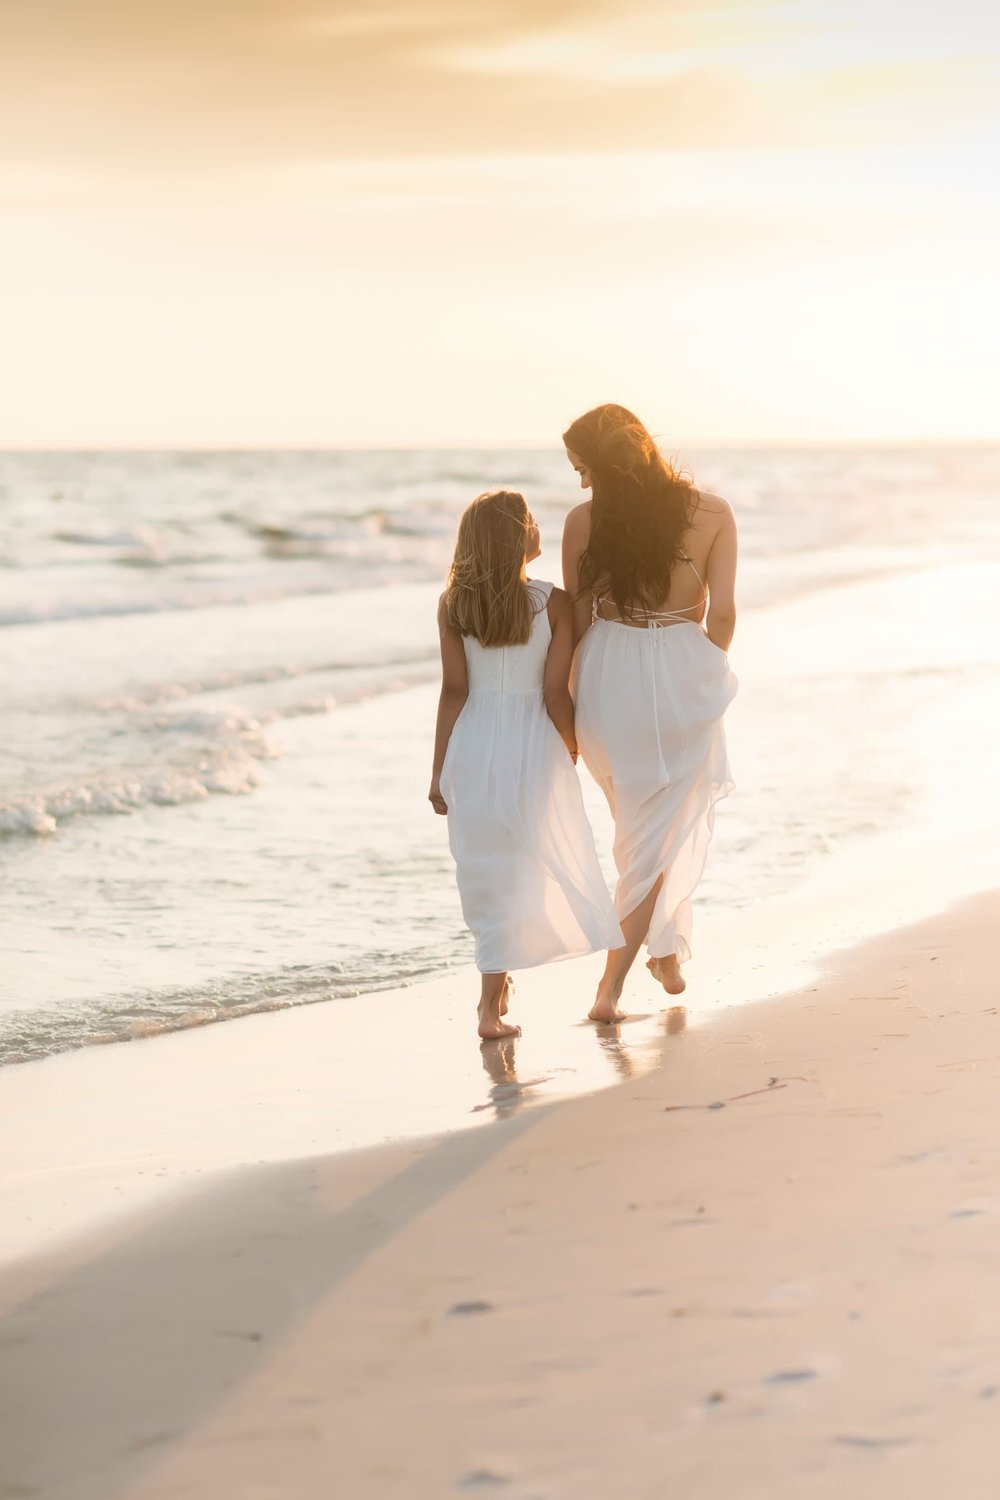 seaside beach photographer captures image of couple in 30A